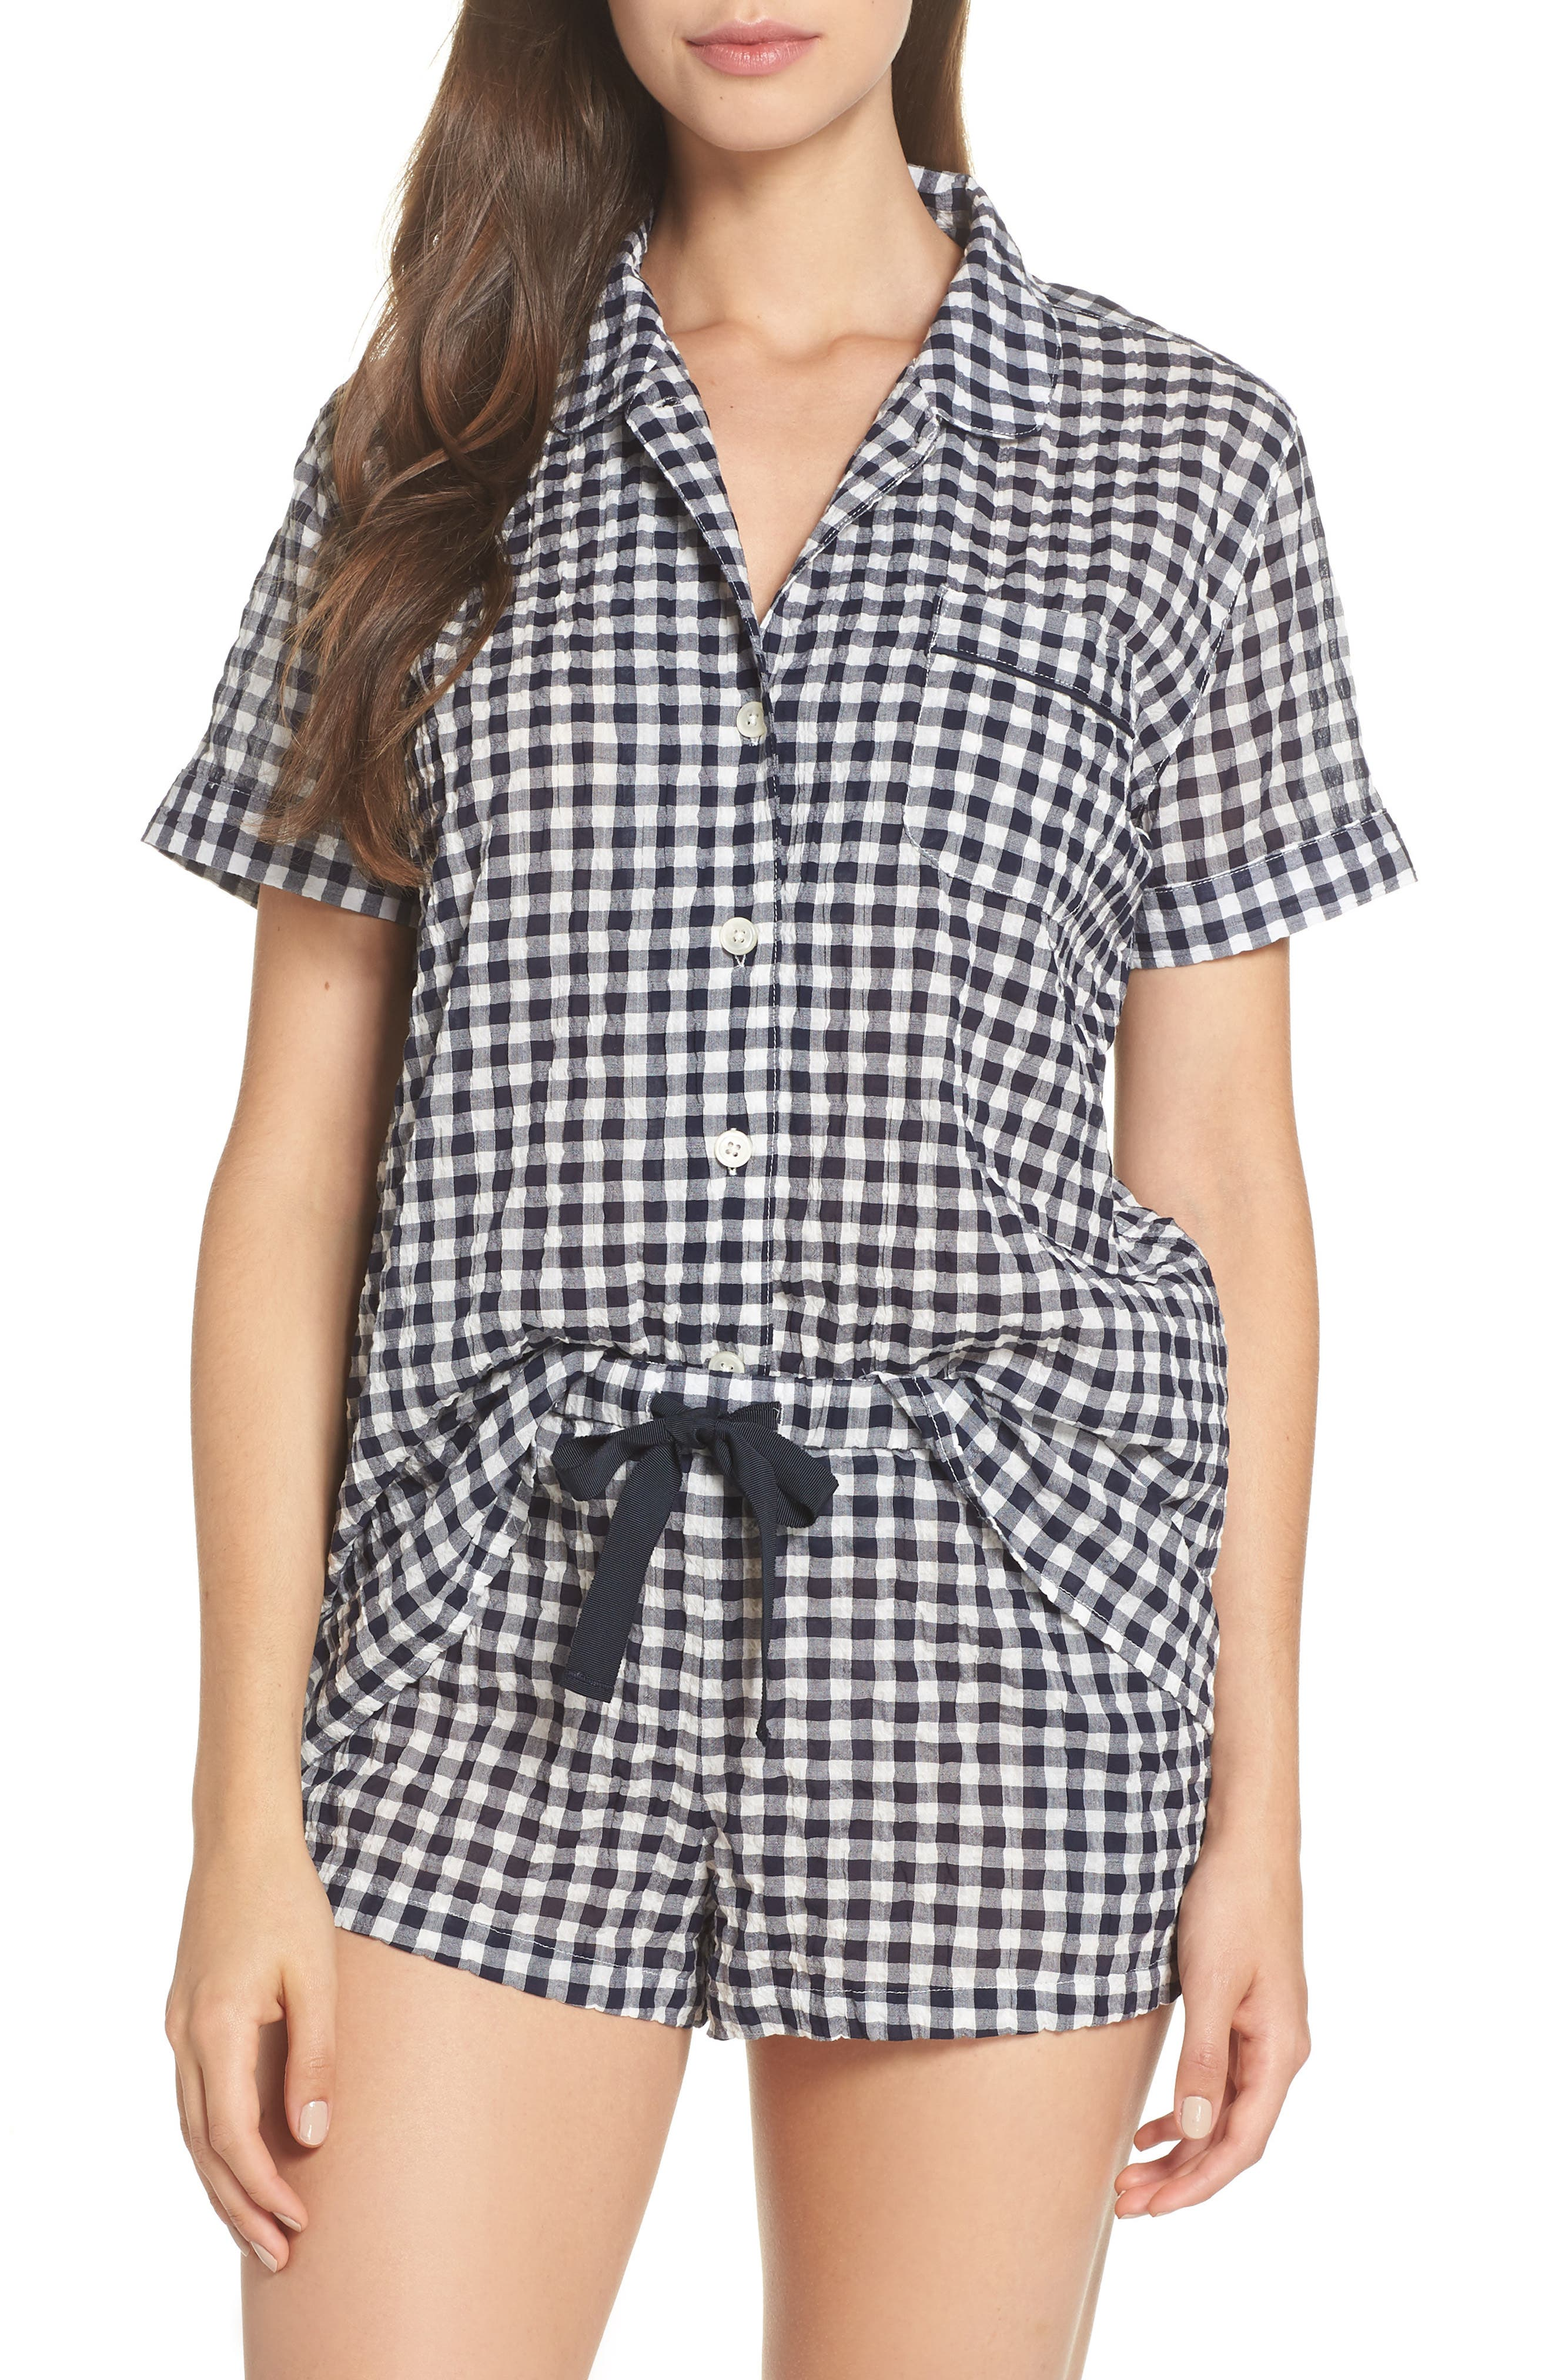 Gingham Pajama Set,                             Main thumbnail 1, color,                             IVORY/ NAVY